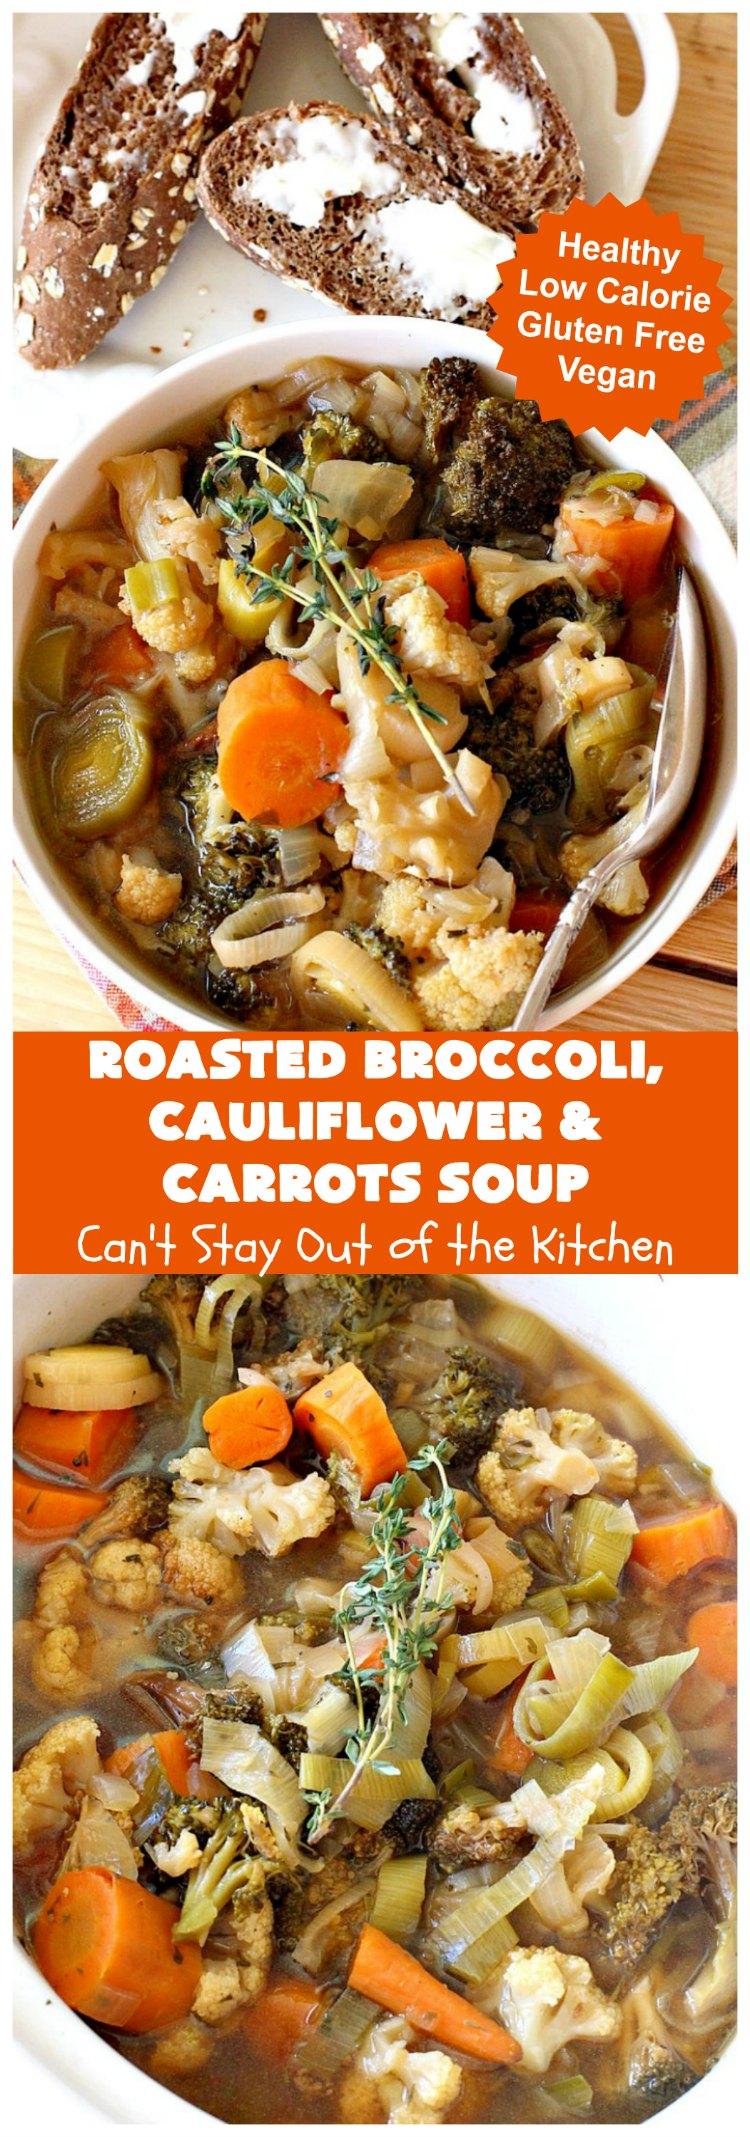 Roasted Broccoli, Cauliflower and Carrots Soup | Can't Stay Out of the Kitchen | this amazing #soup starts with roasting the #vegetables which really enhances the flavor. This comfort food #recipe is perfect for cold, winter nights. It's also #healthy, #LowCalorie, #vegan & #GlutenFree. #Broccoli #carrots #Cauliflower #BroccoliCauliflowerAndCarrotsSoup